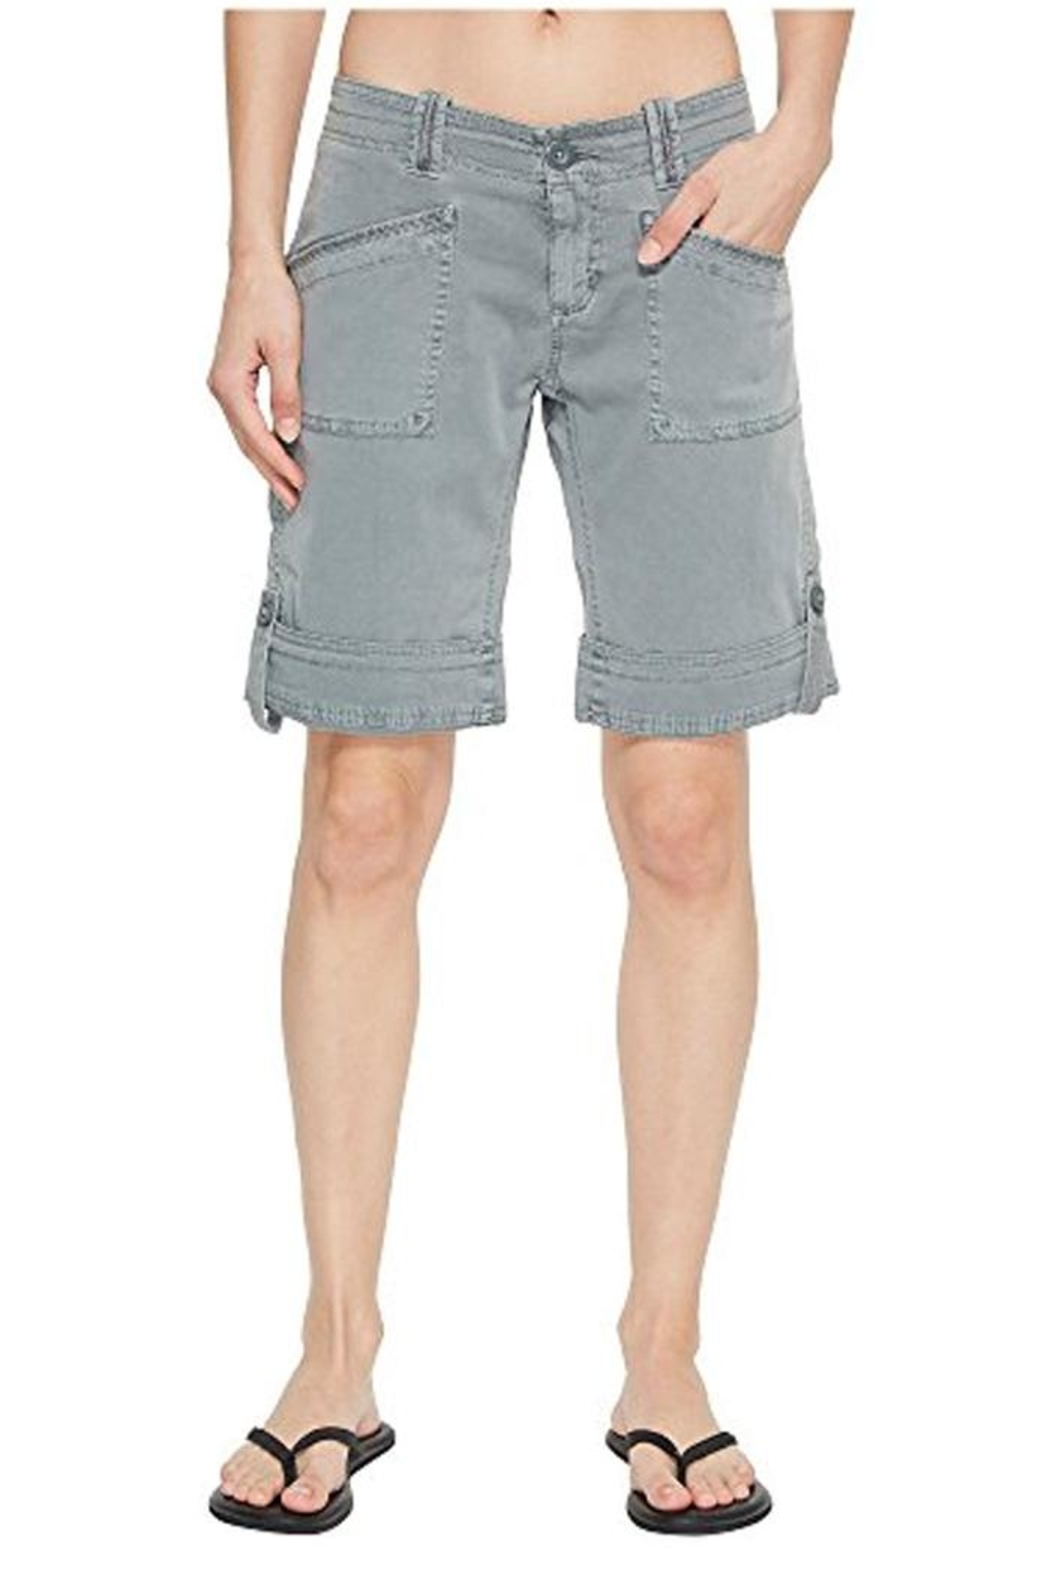 Aventura Clothing Organic Cotton Short - Main Image